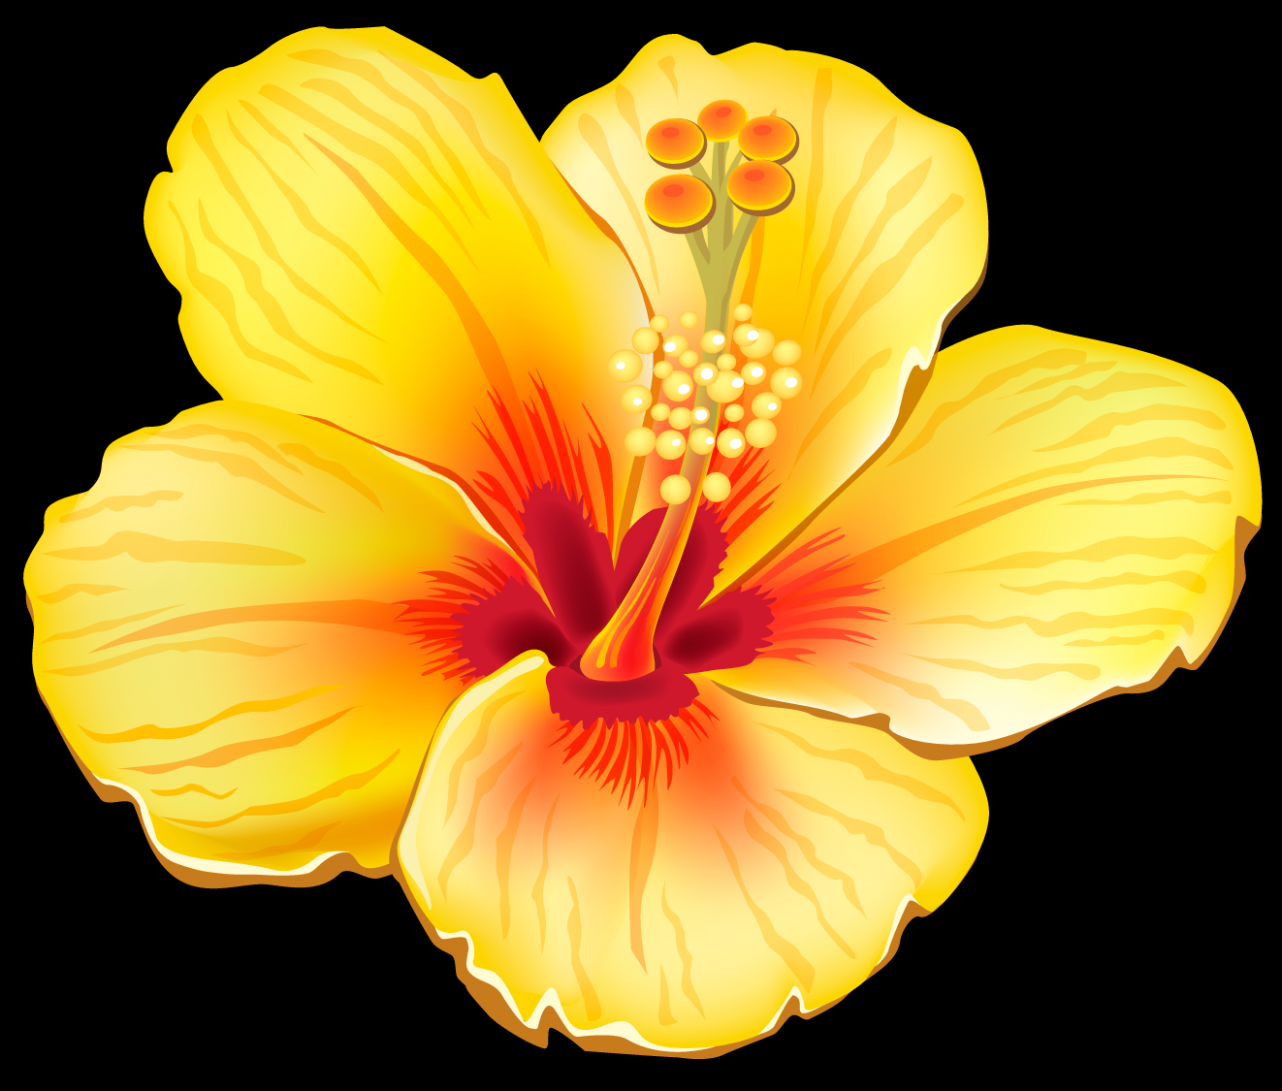 Understanding The Background Of Flowers Clipart Flowers Clipart Http Bit Ly 2nkhlfb Tropical Flower Tattoos Hawaiian Art Tropical Flowers